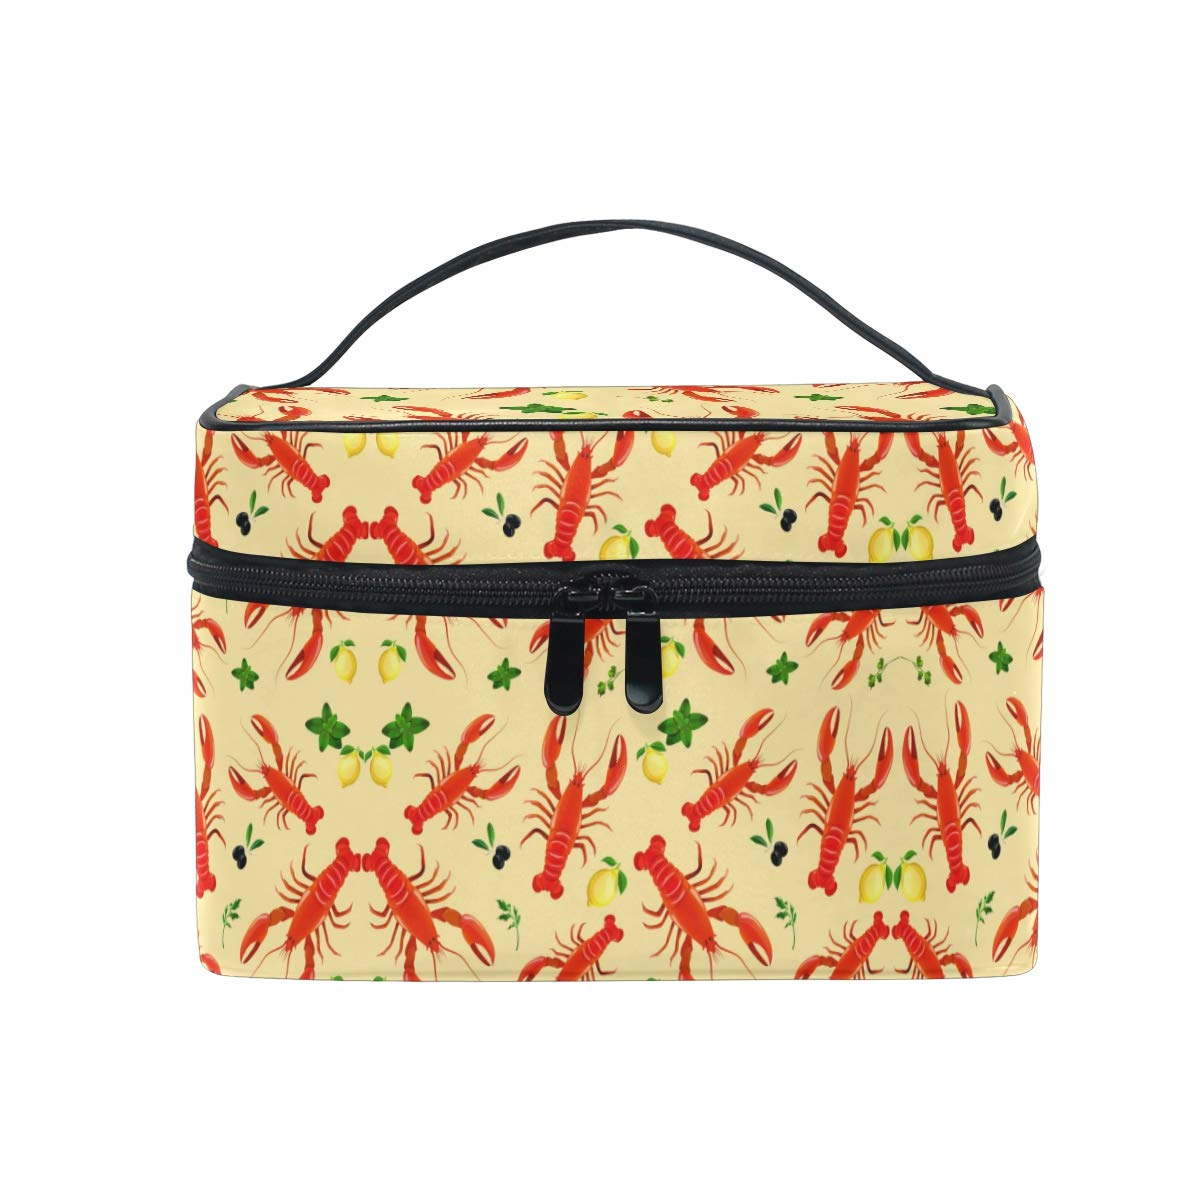 Sea Food Lobster Cosmetic Bag Organizer Zipper Makeup Bags Pouch Toiletry Case for Girl Women